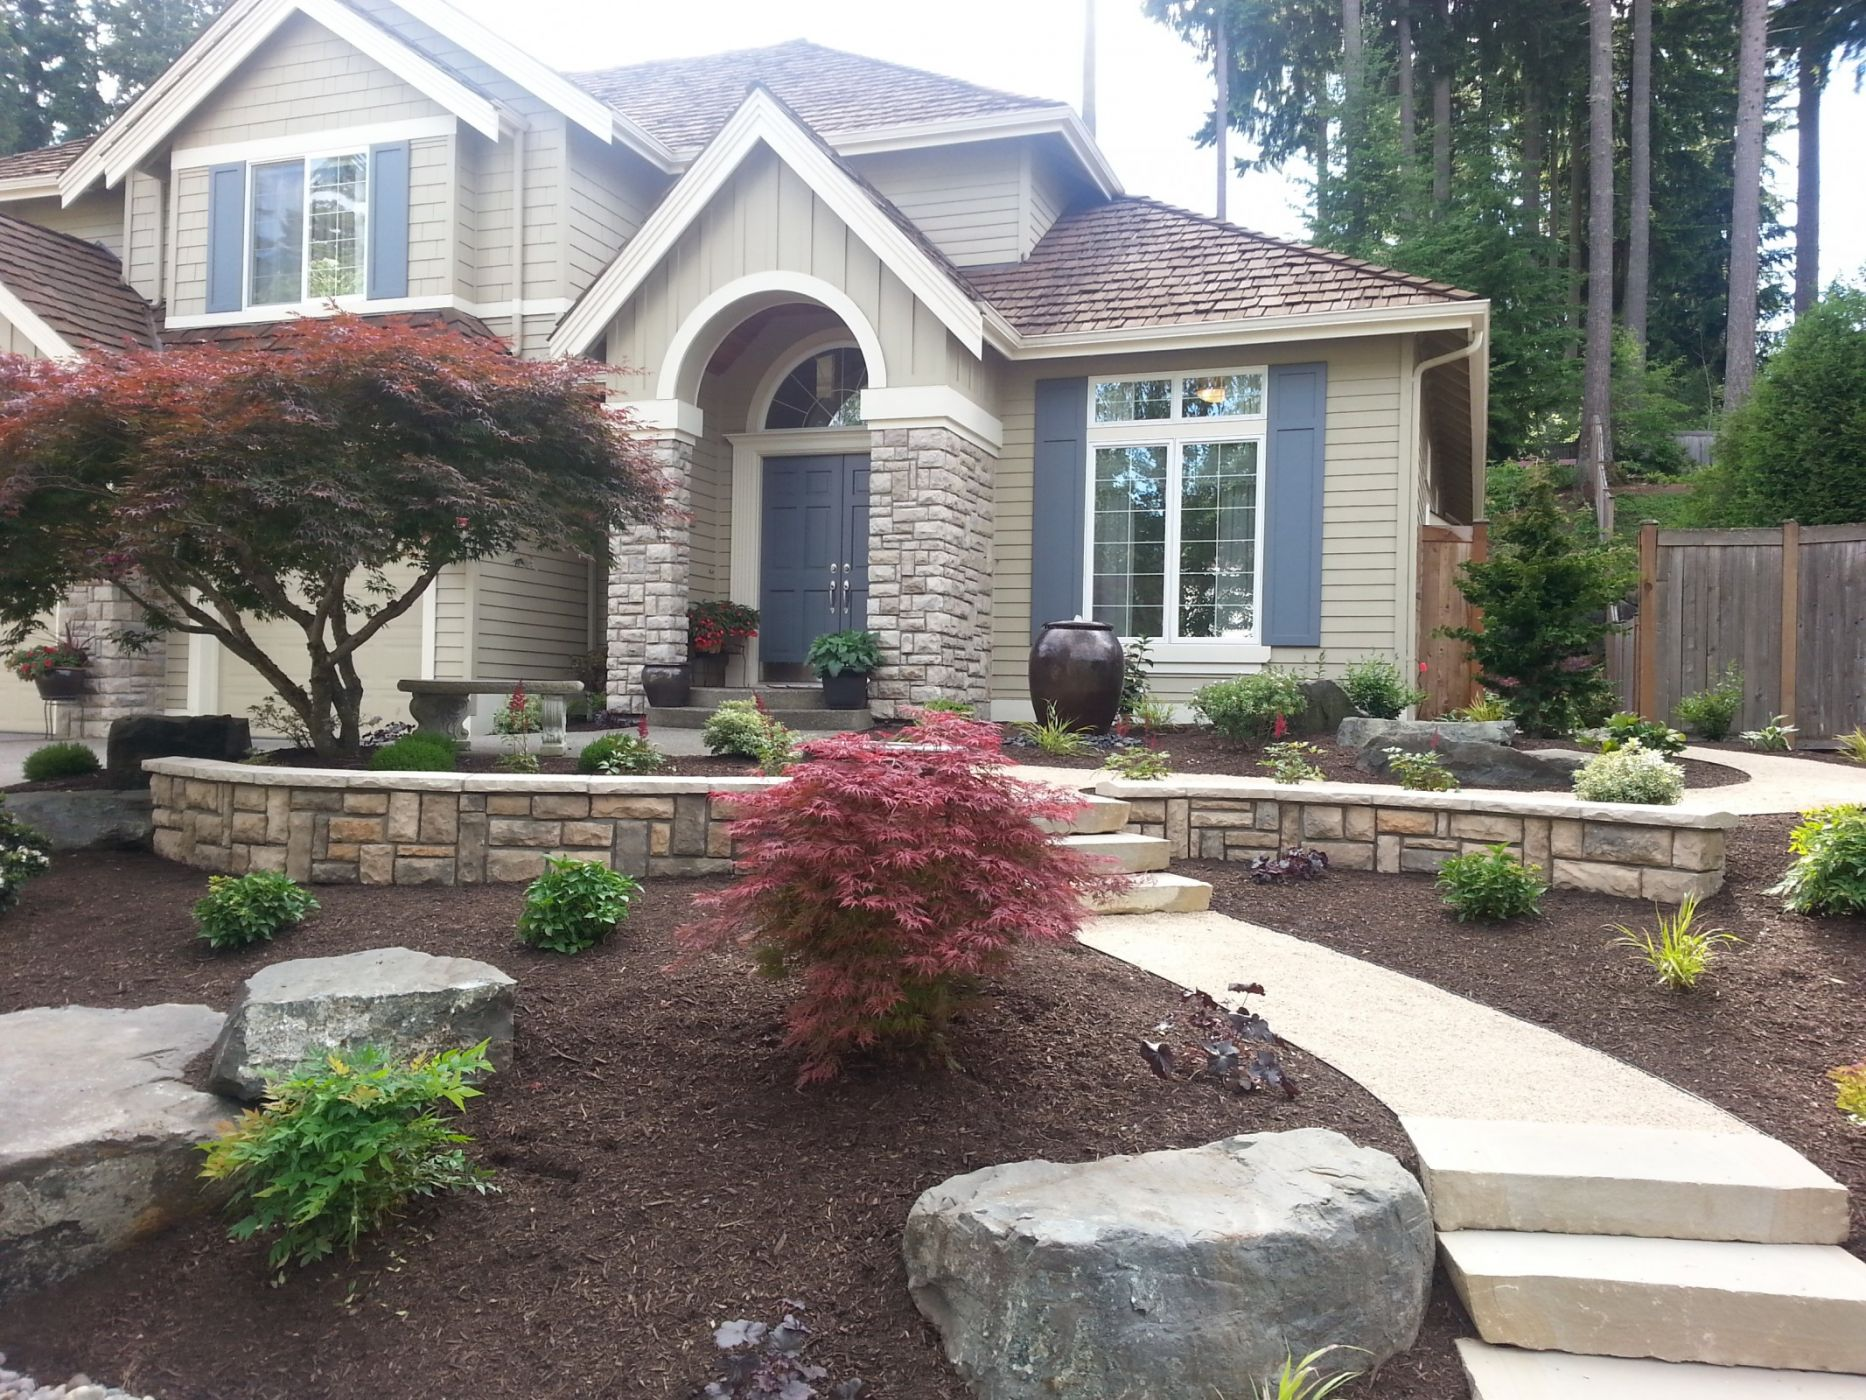 Janika landscaping ideas front yard illinois here for Front house ideas